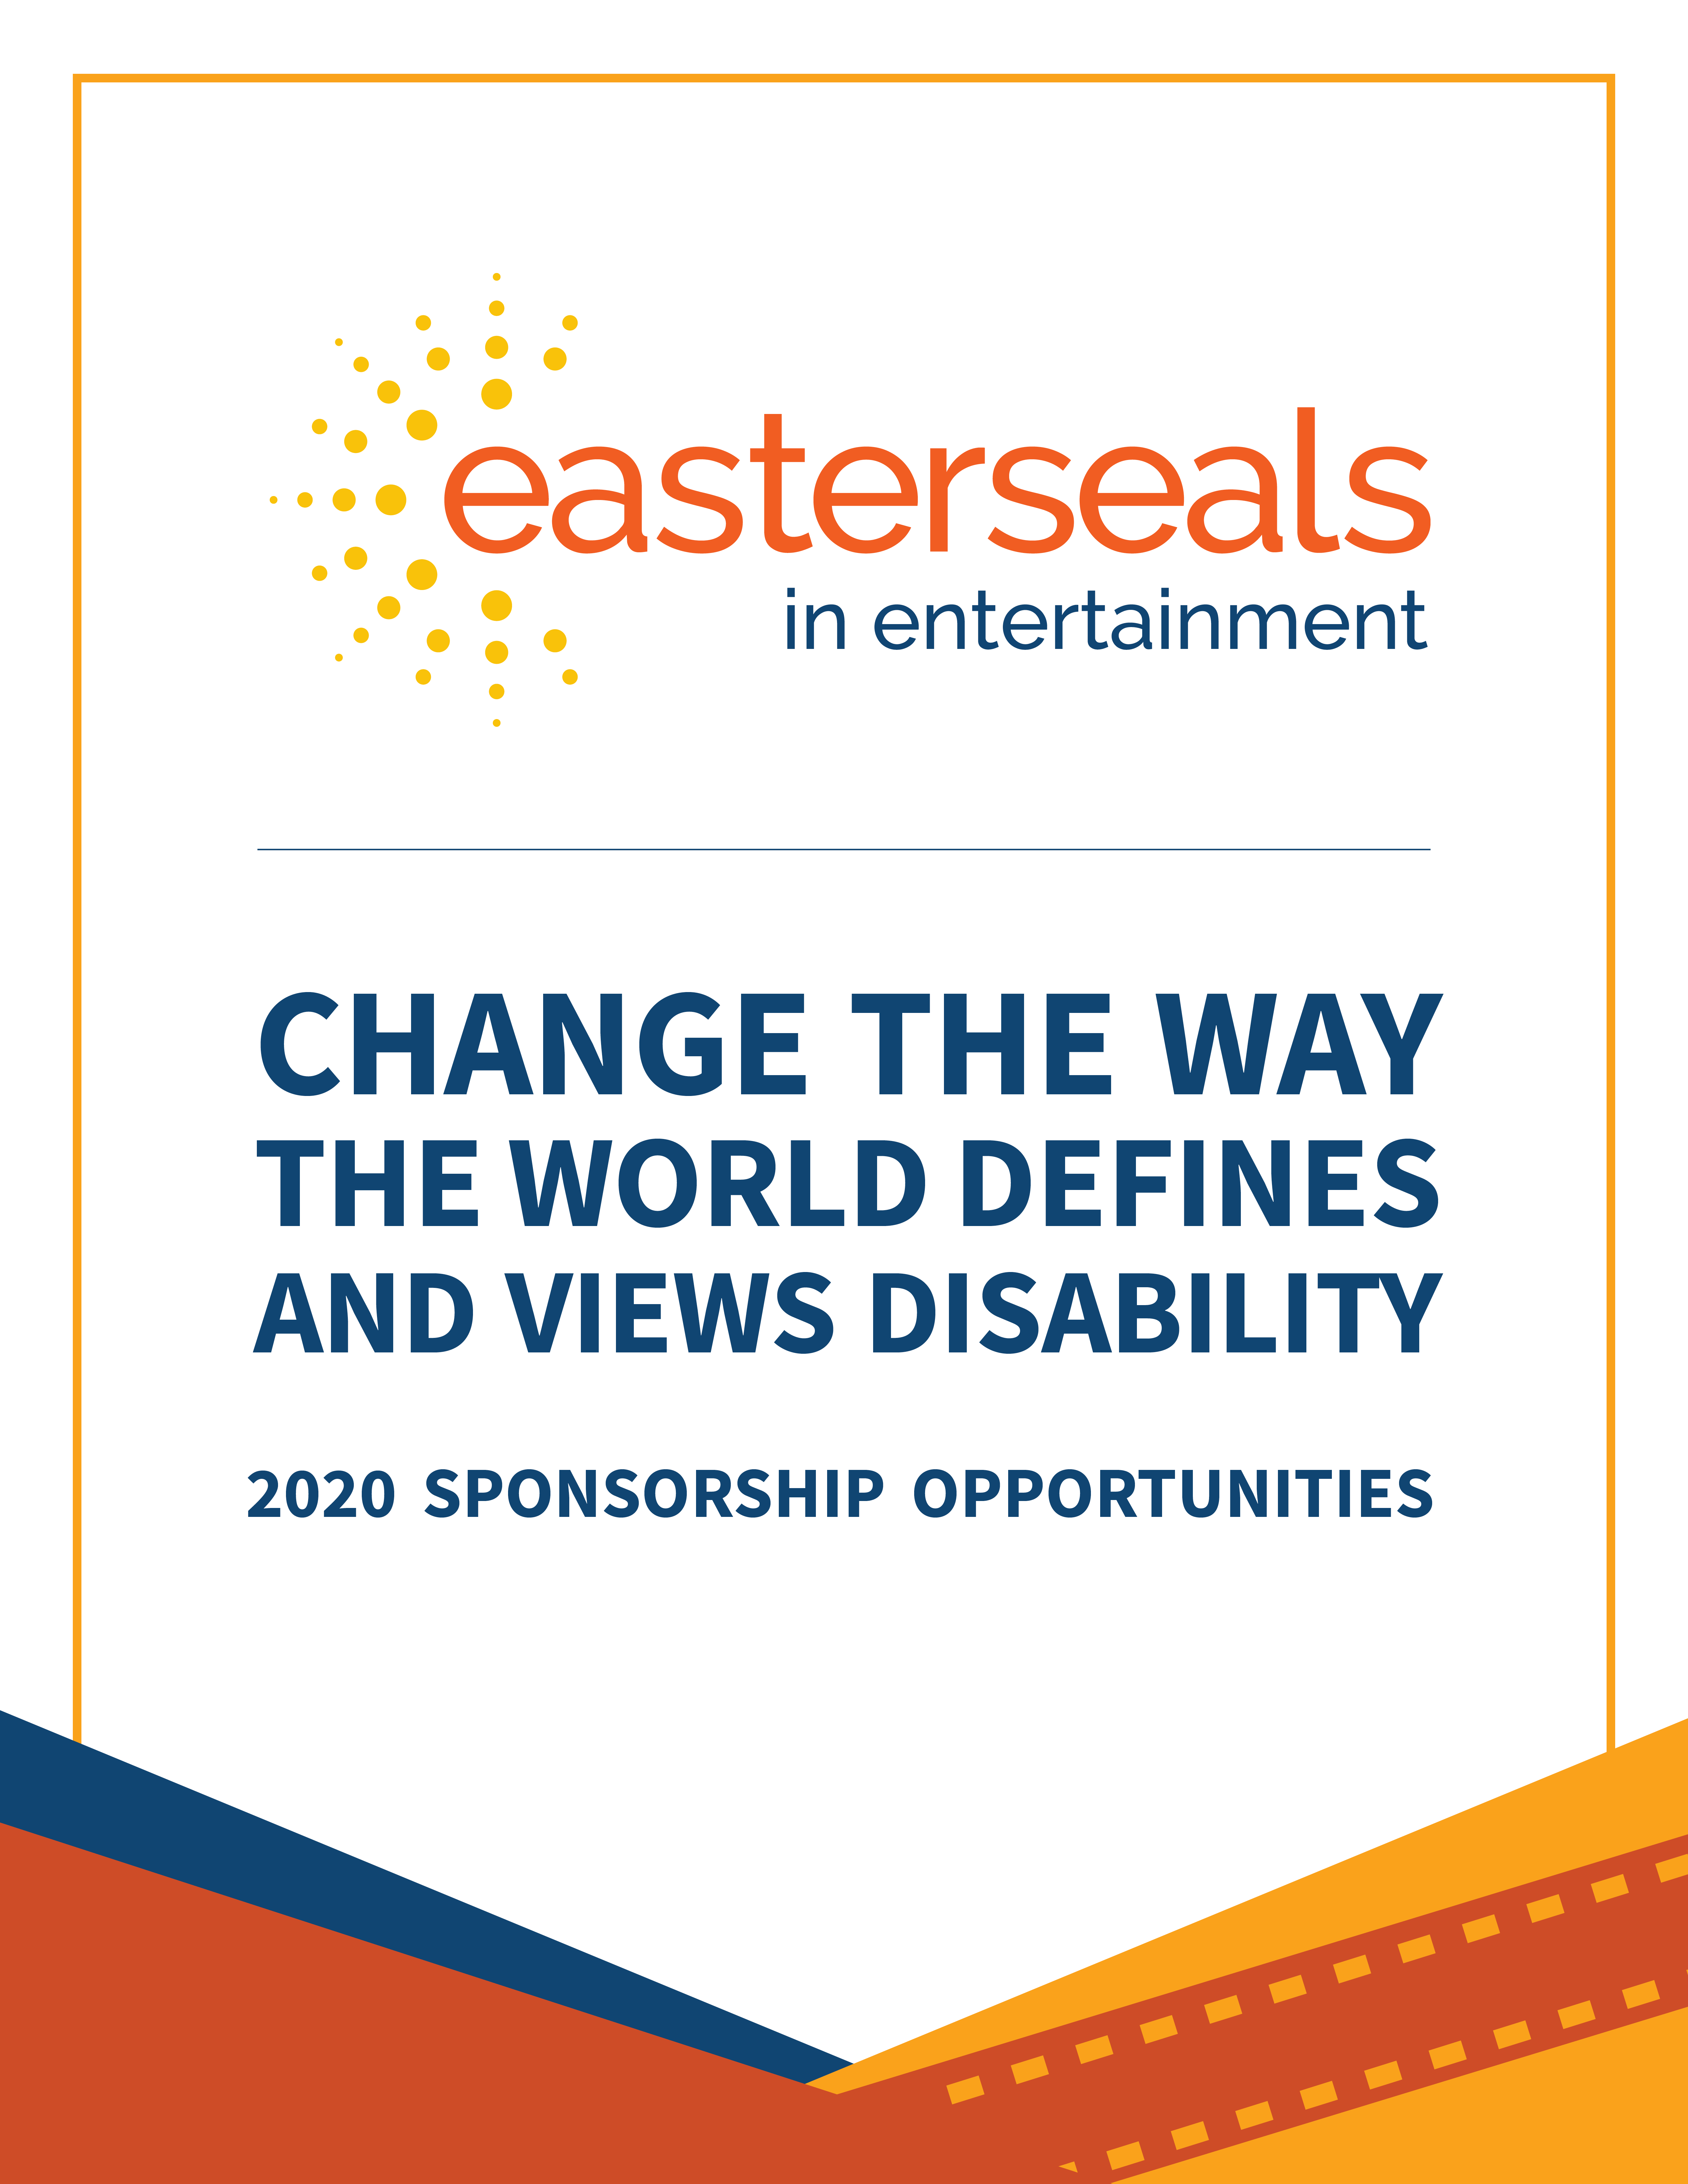 Change the way the world defines and views disability 2020 sponsorship opportunities thumbnail image